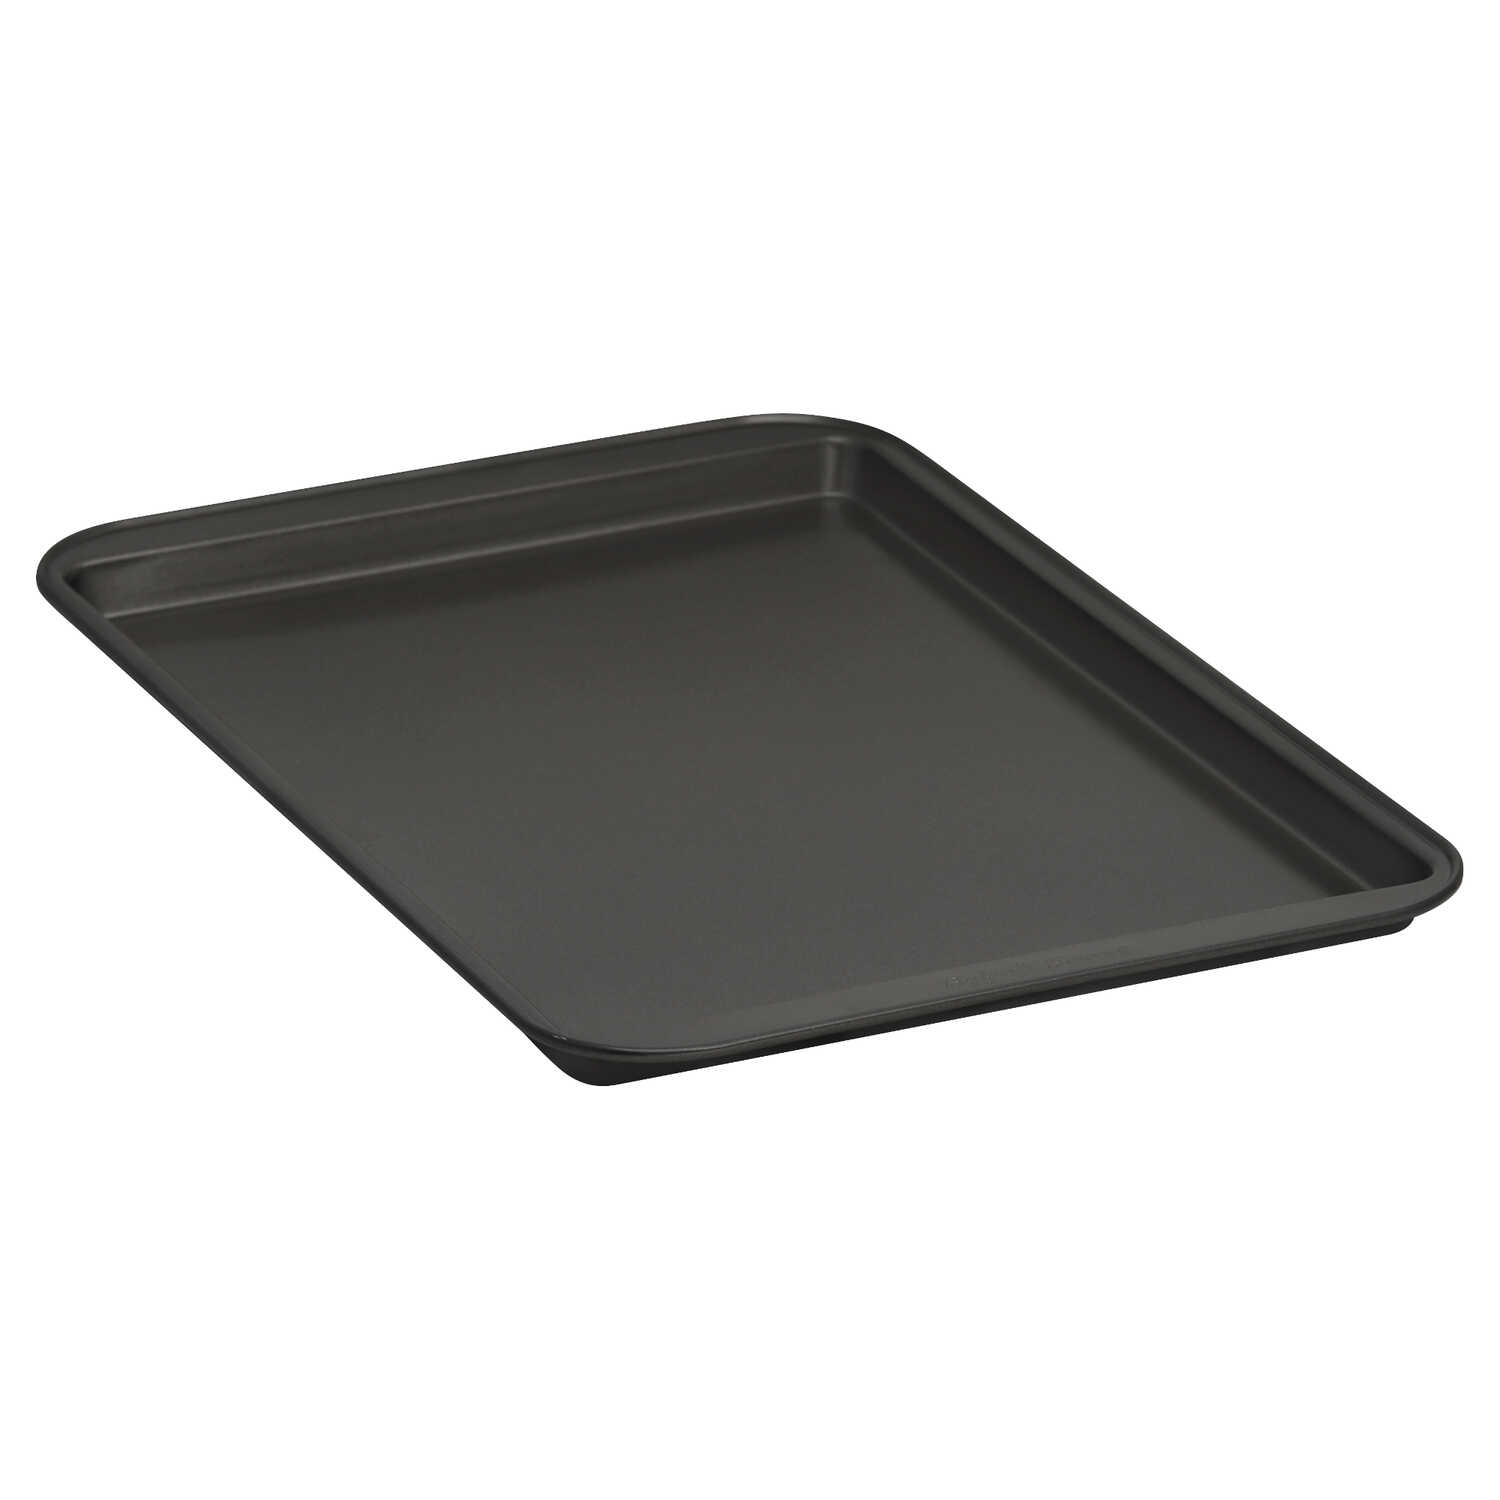 Baker's Secret  9.43 in. W x 13.36 in. L Cookie Sheet  Gray